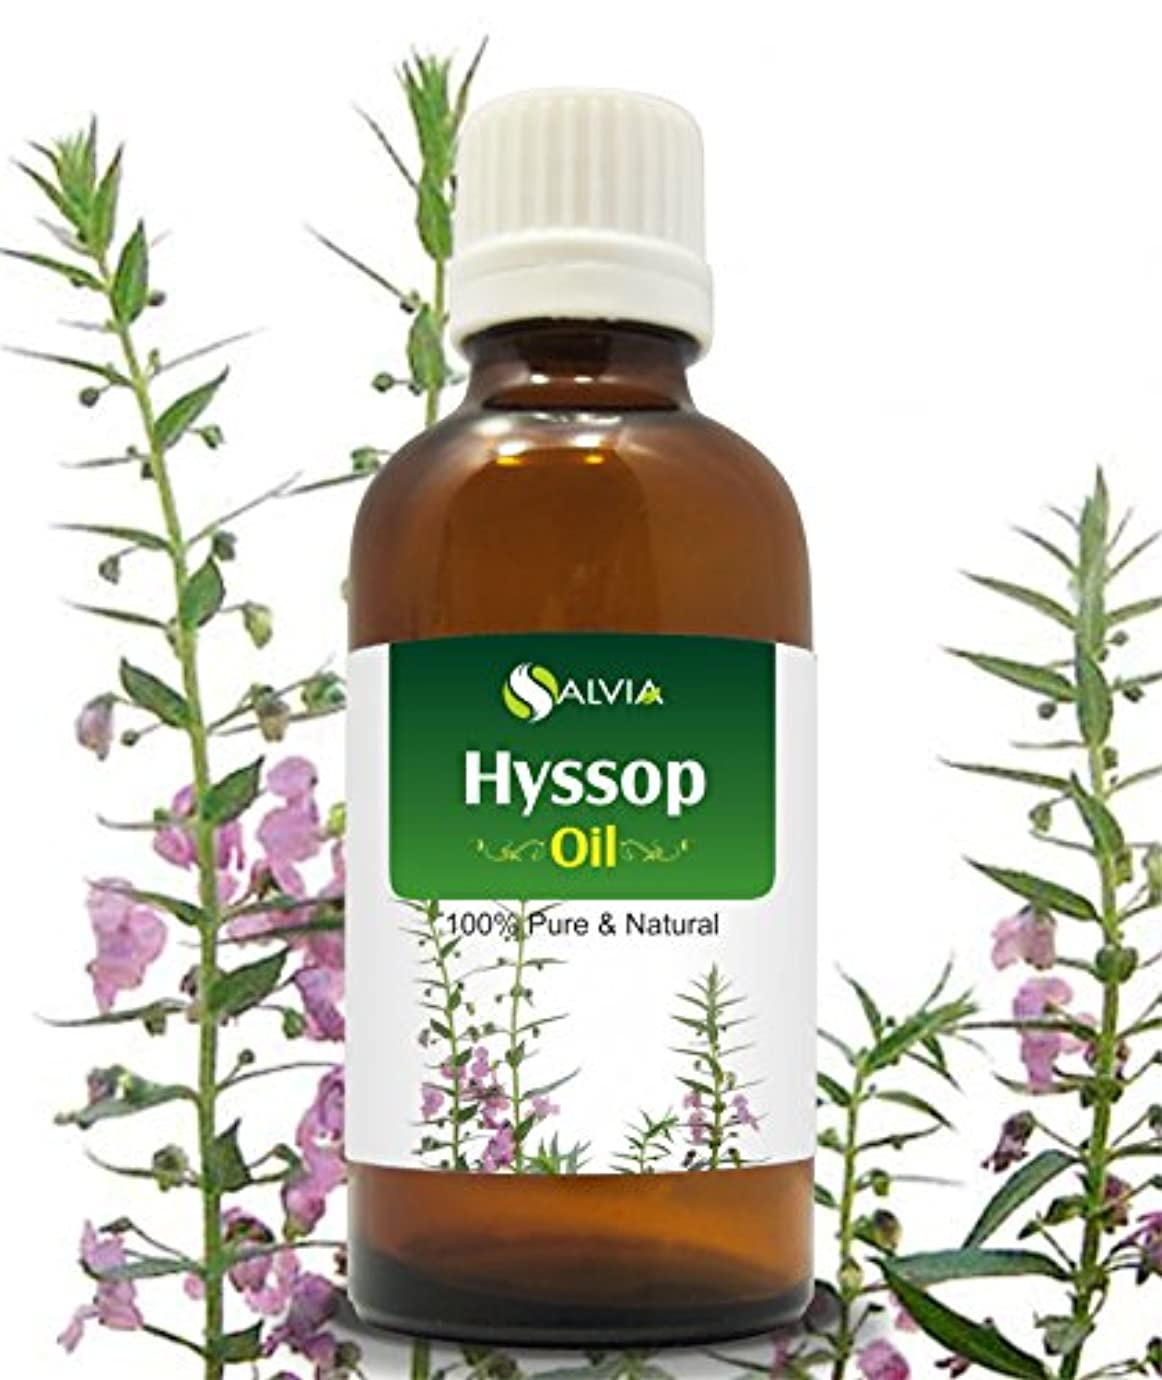 HYSSOP OIL 100% NATURAL PURE UNDILUTED UNCUT ESSENTIAL OILS 50ML